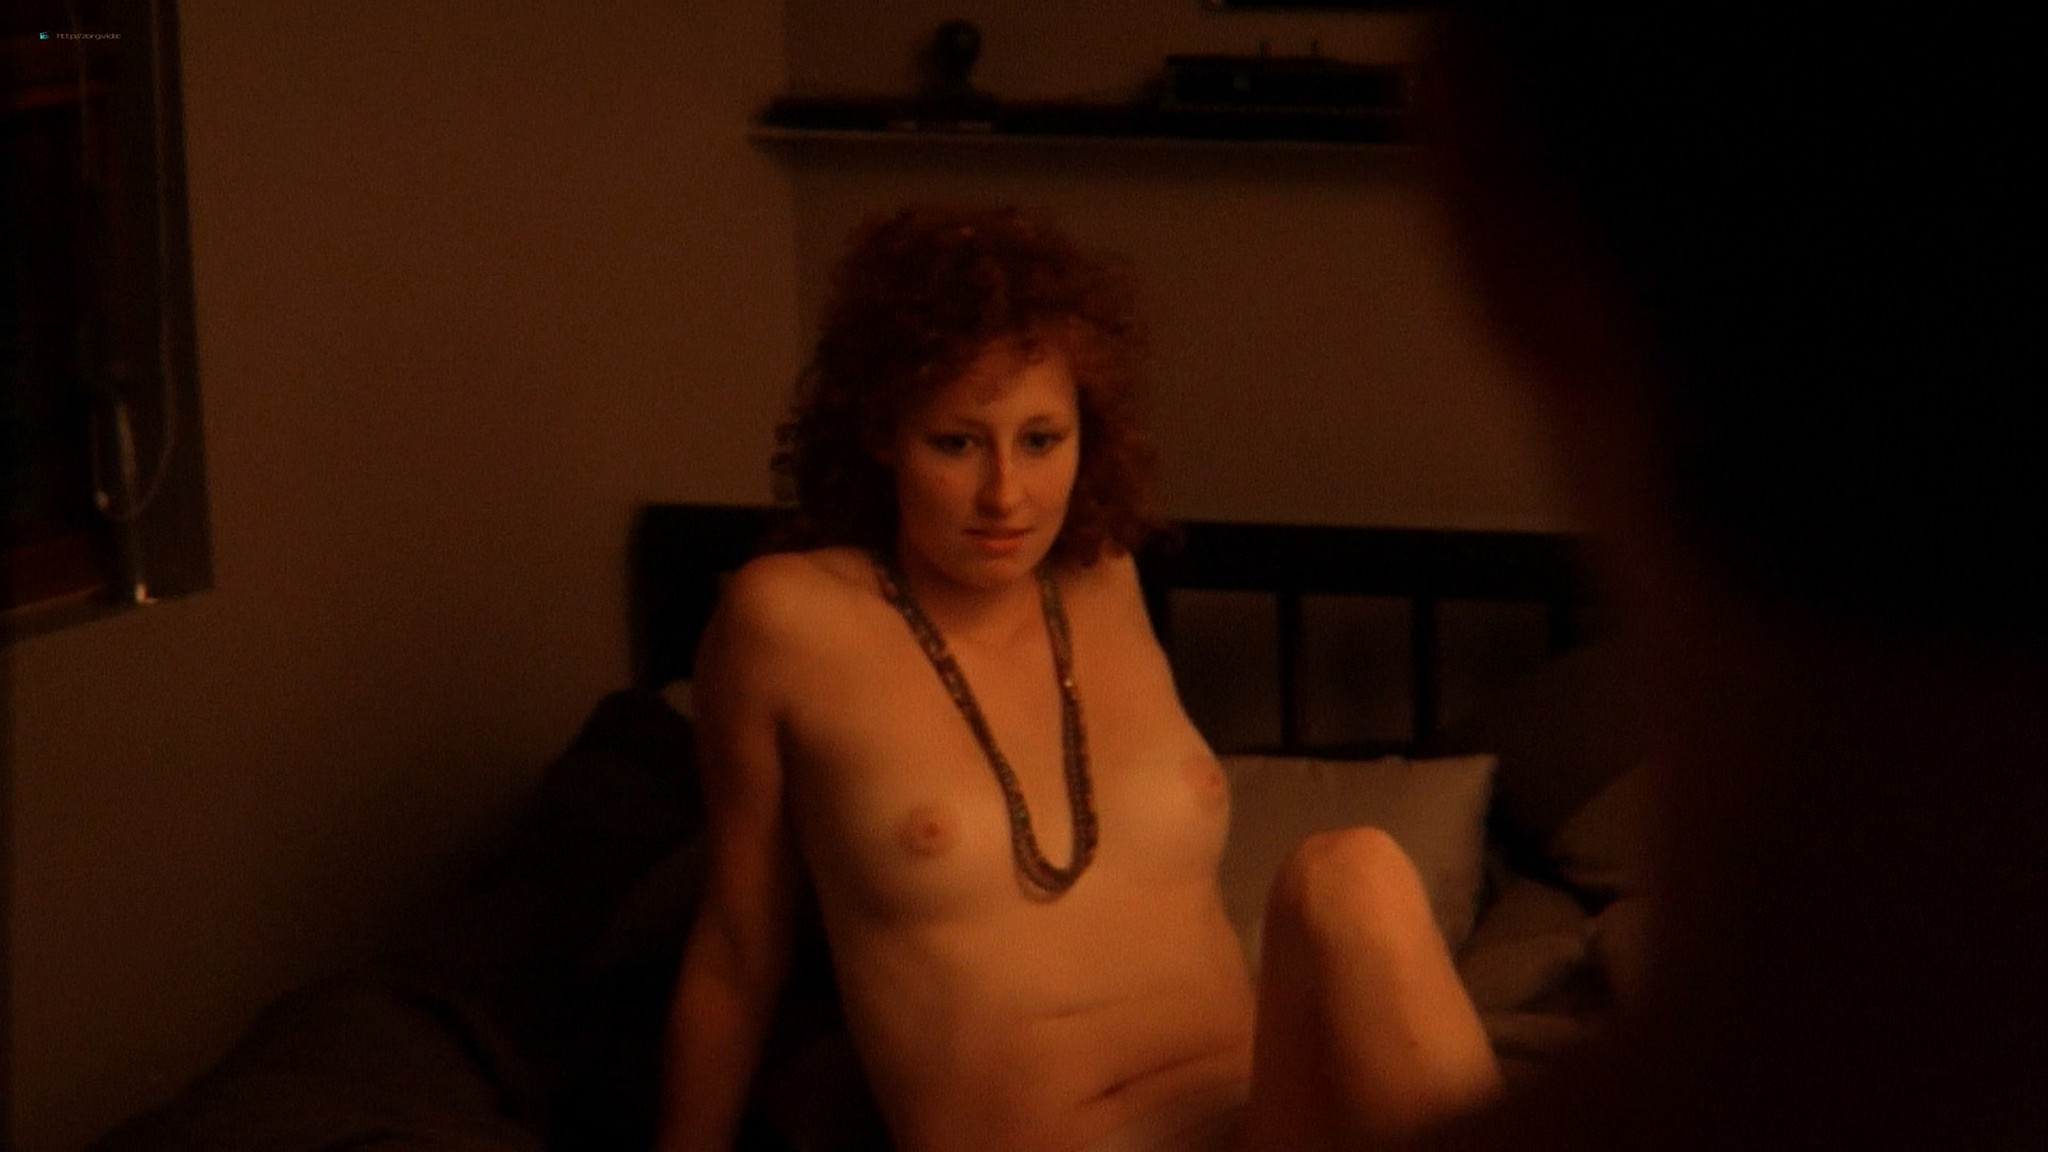 Amy Seimetz nude Kate Lyn Sheil nudeand other nude sex - Autoerotic (2010) HD 1080p Web (14)